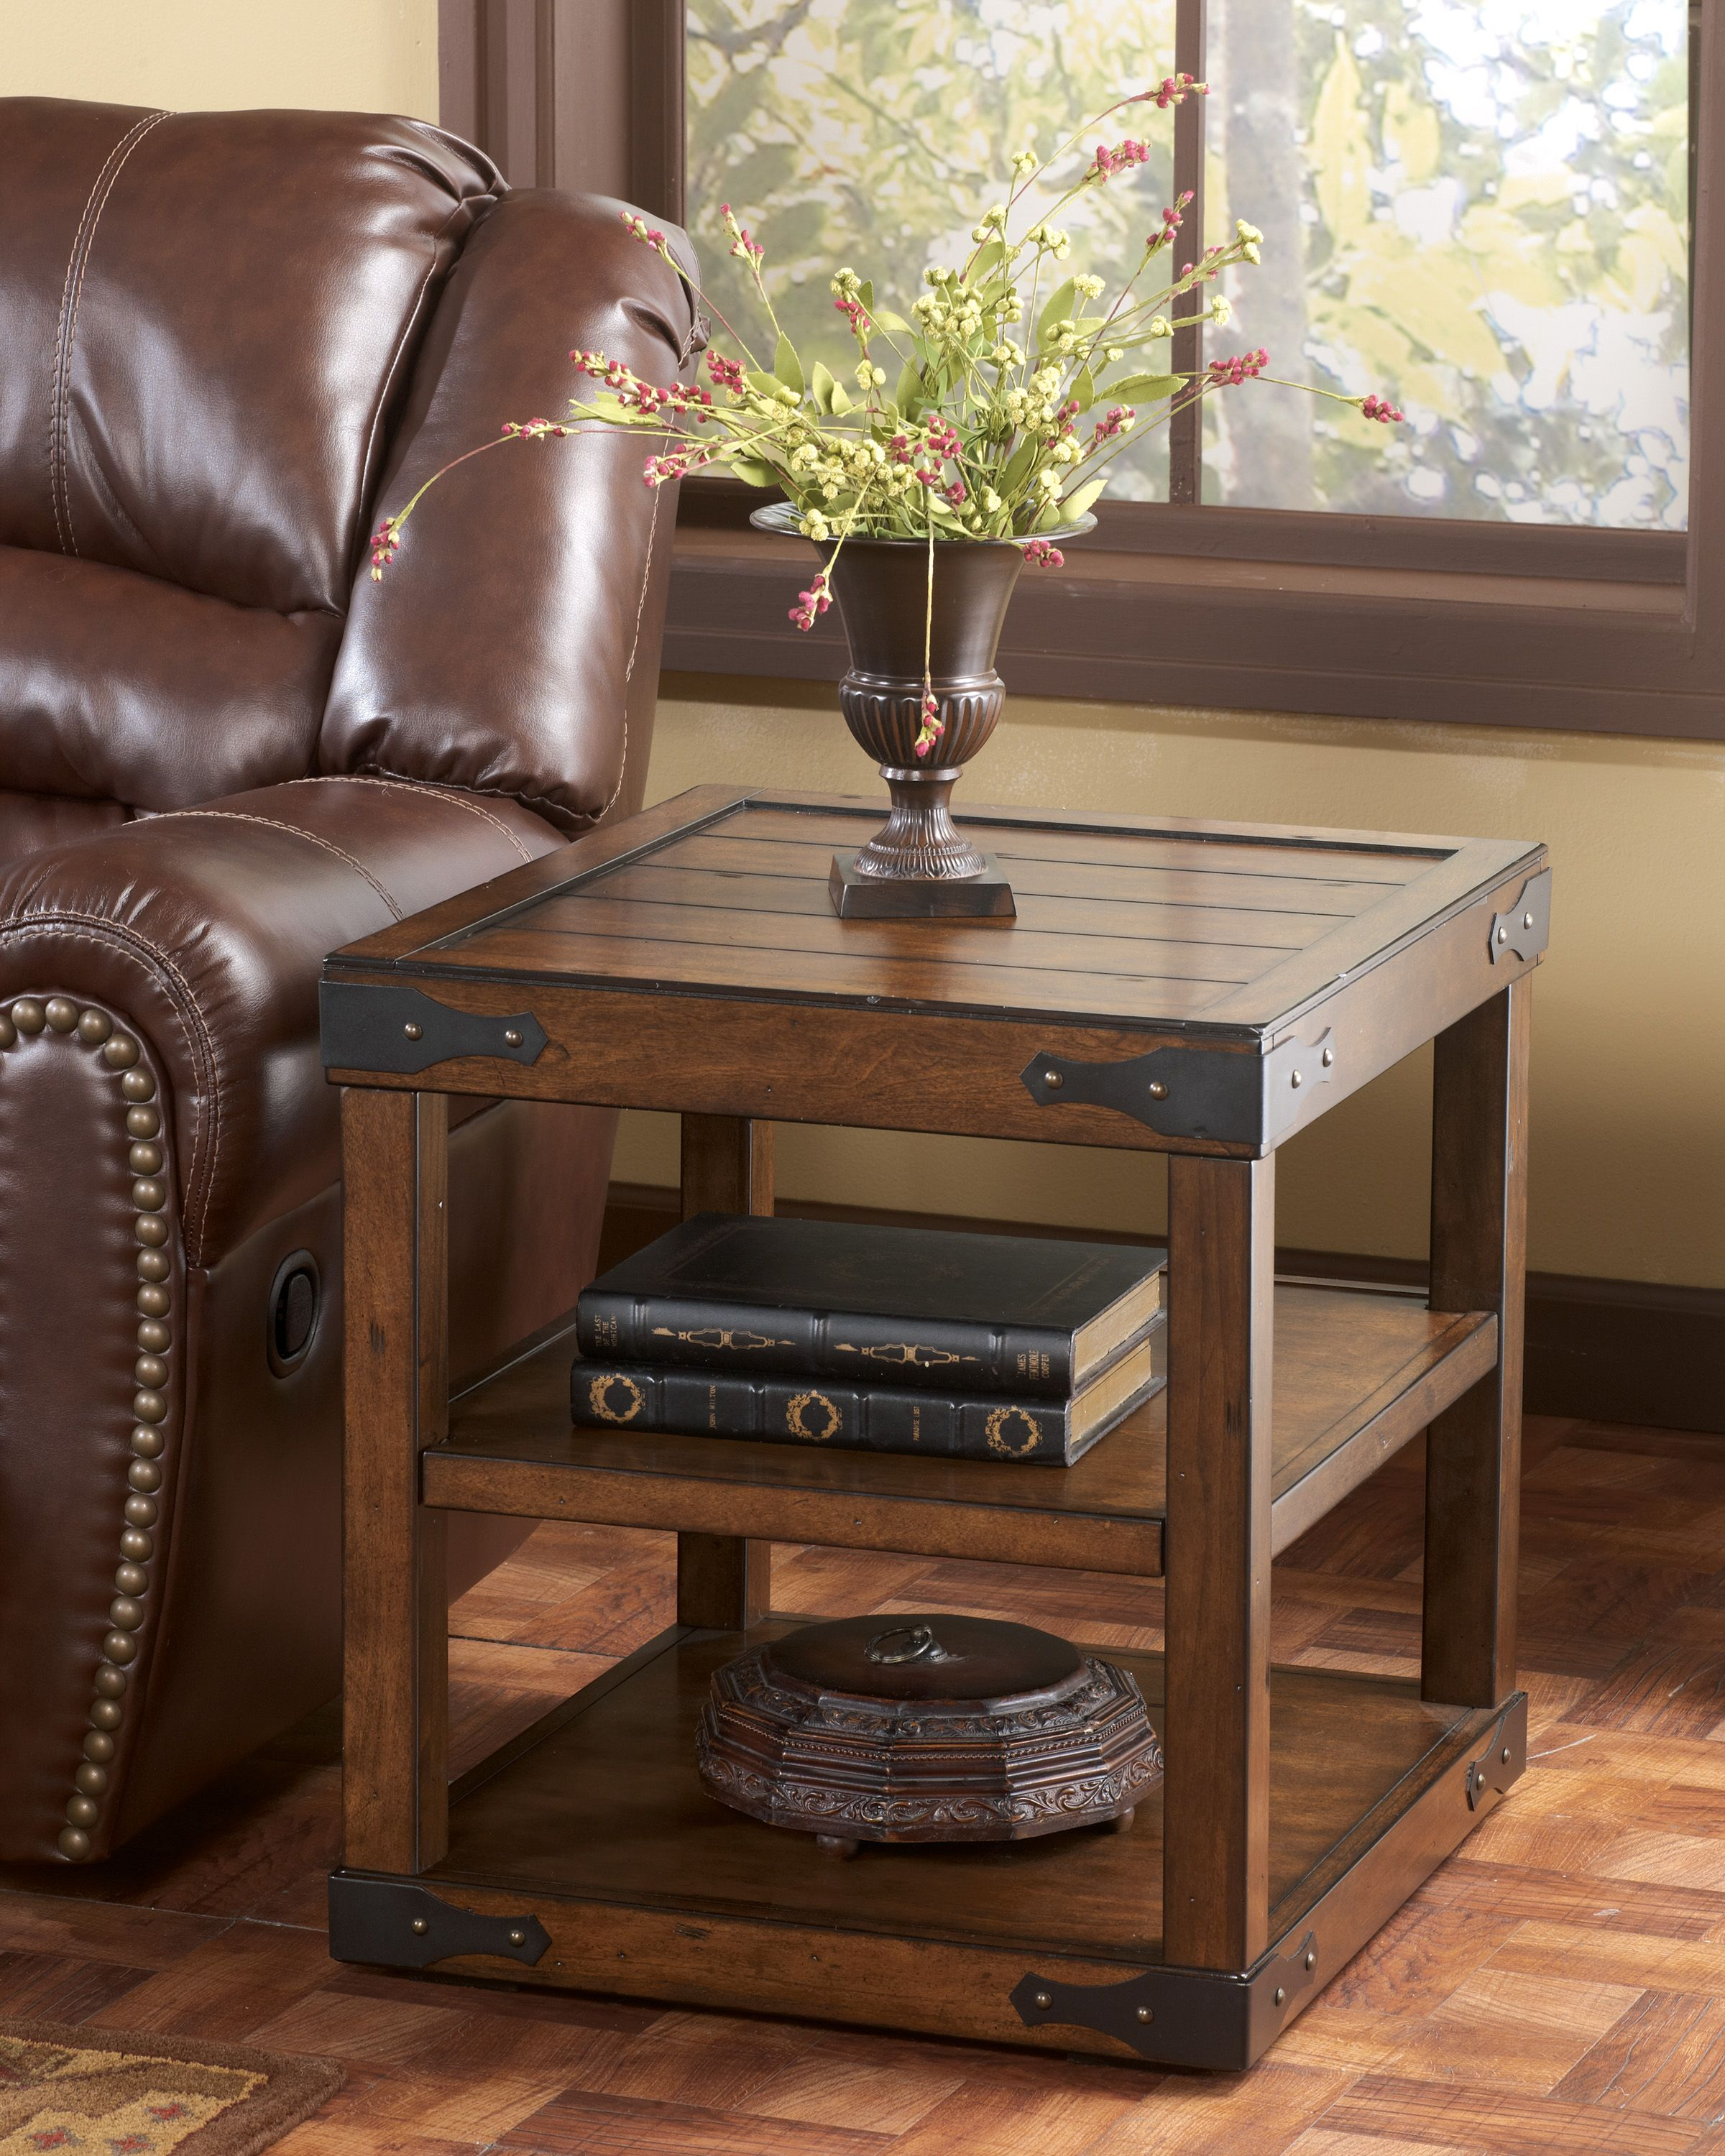 End Table For Living Room Rustic End Tables Google Search Home Decor Rustic End Tables